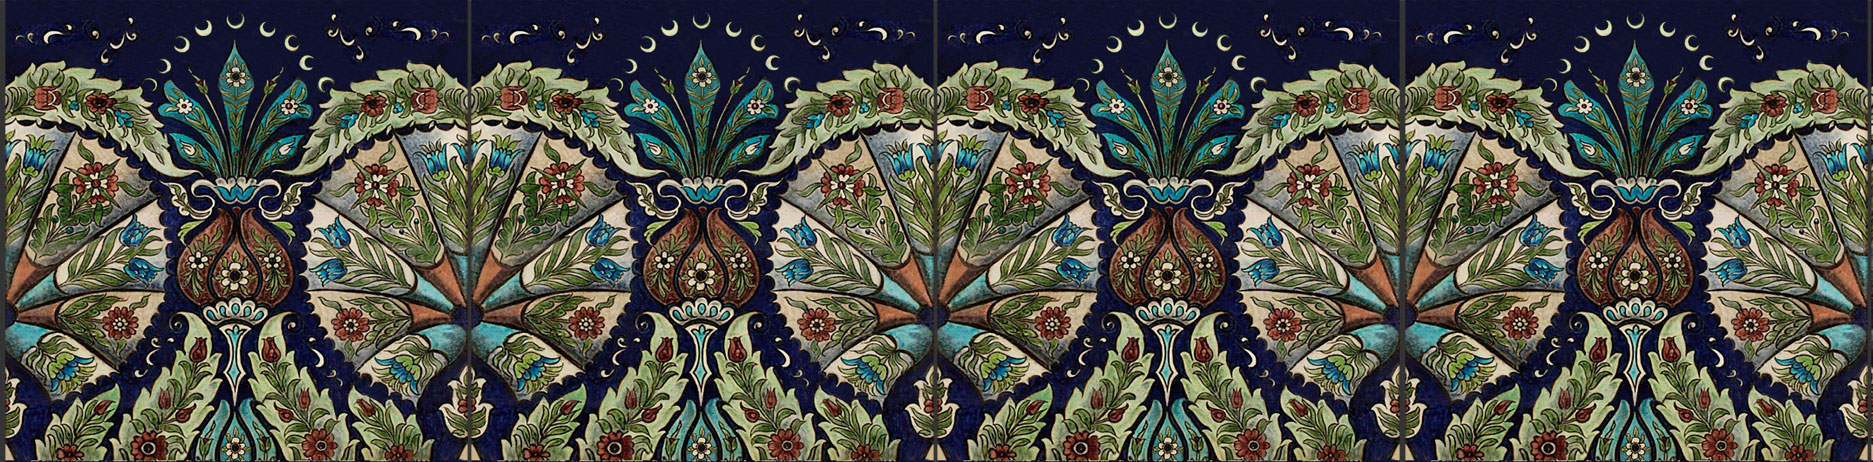 Iznik Empress tiles, based on William De Morgan Leighton House tiles